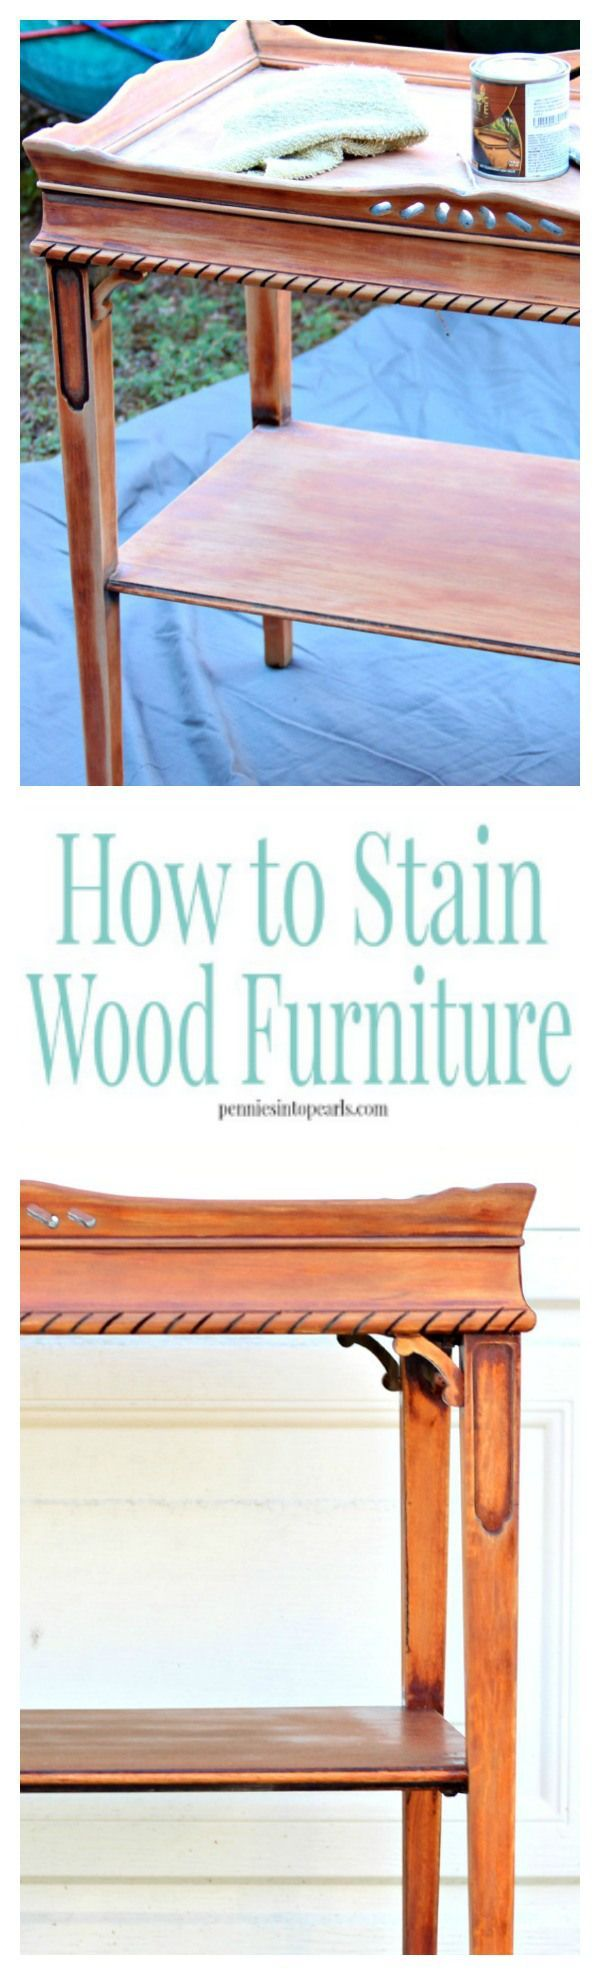 3 Tips on How to Stain Wood Furniture | Diy wood stain ...